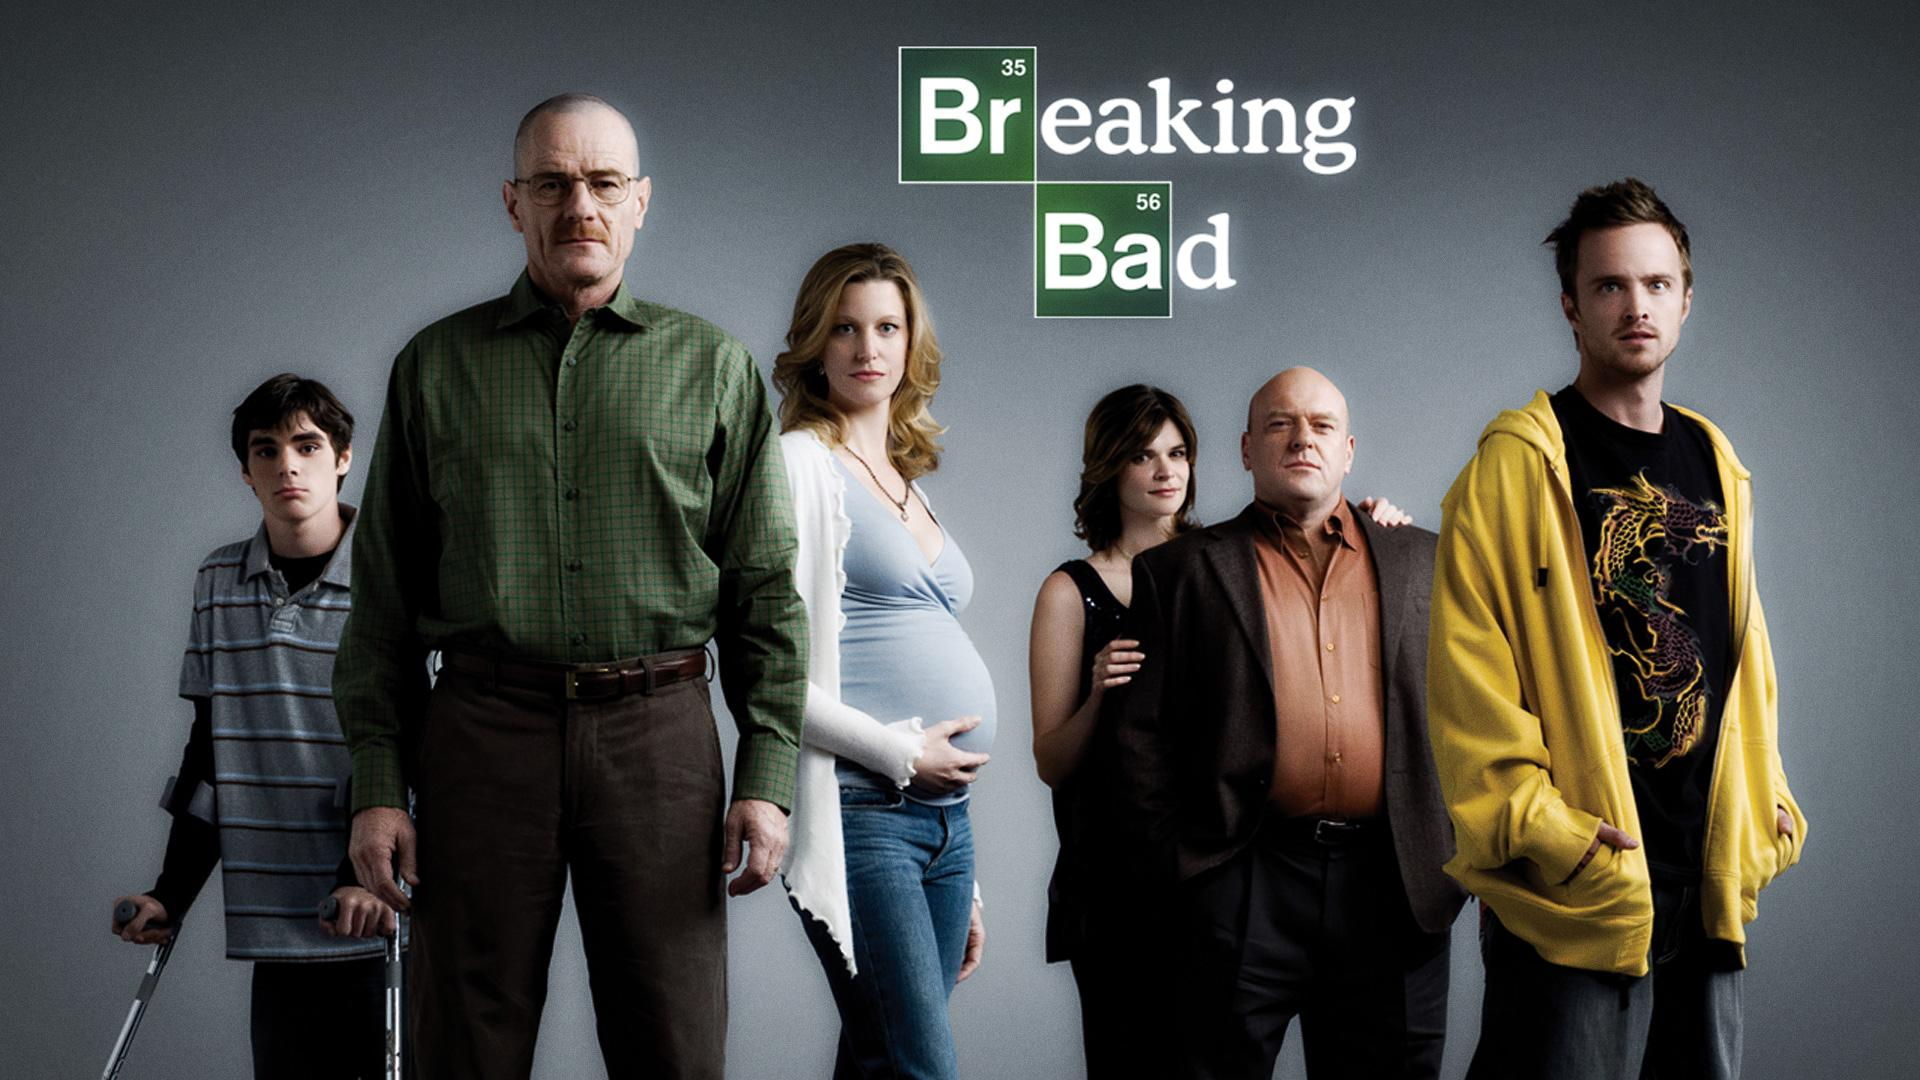 Bad Serie Cbm Fan Cast Breaking Bad By Iamnotgroot